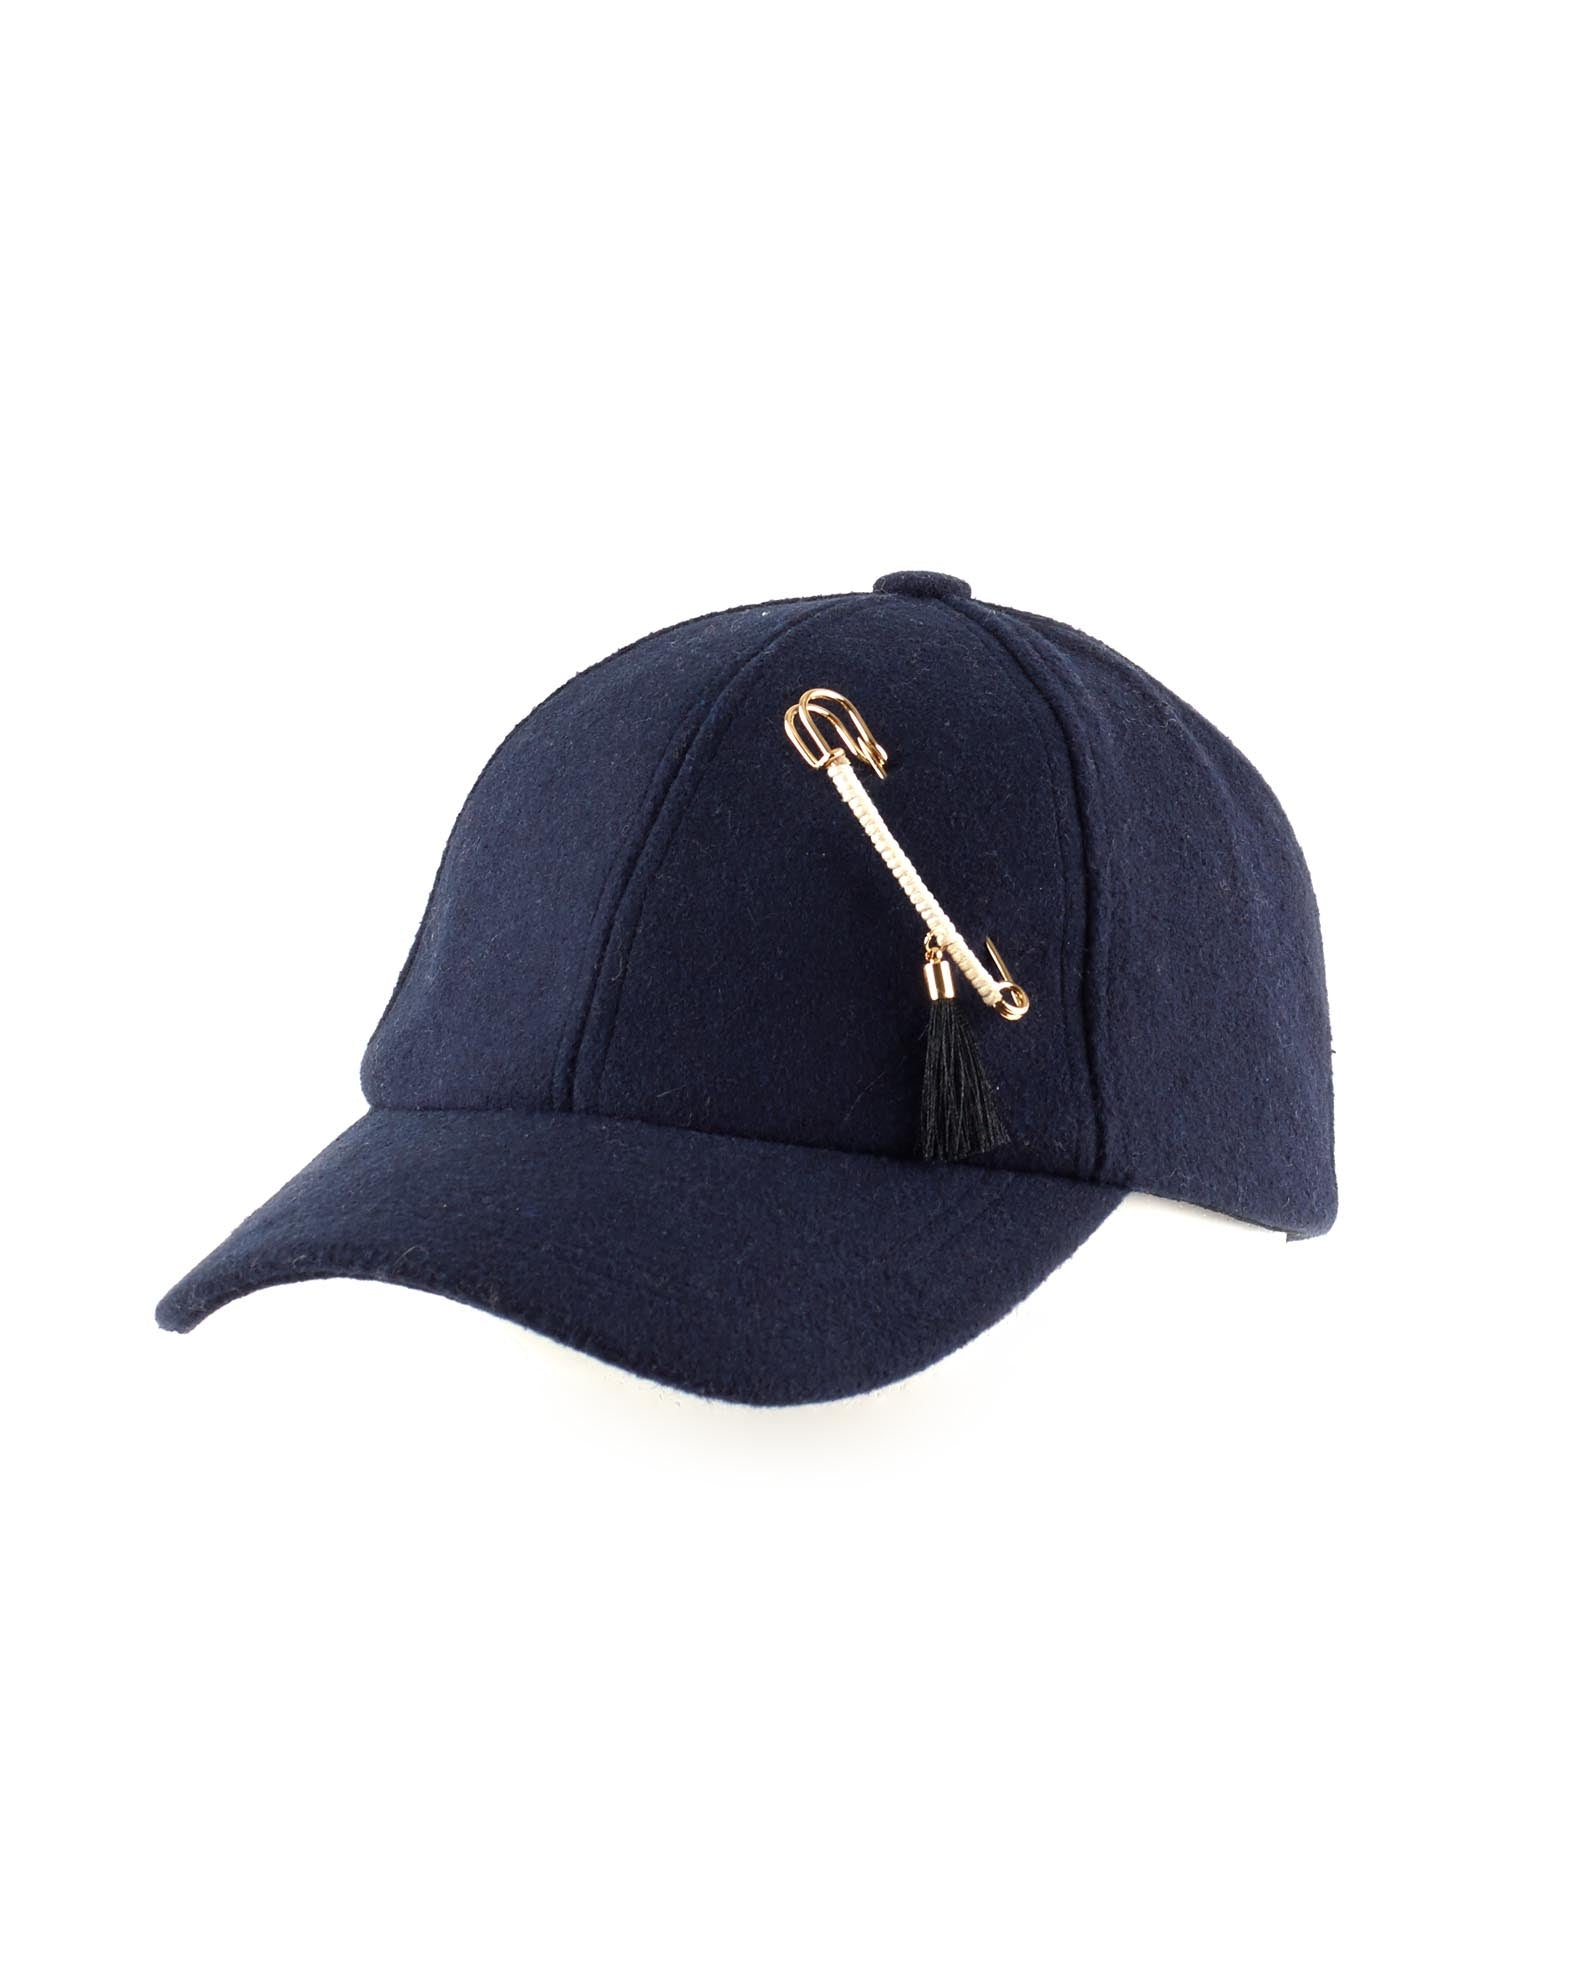 Maritime Navy - Solid Baseball Hat